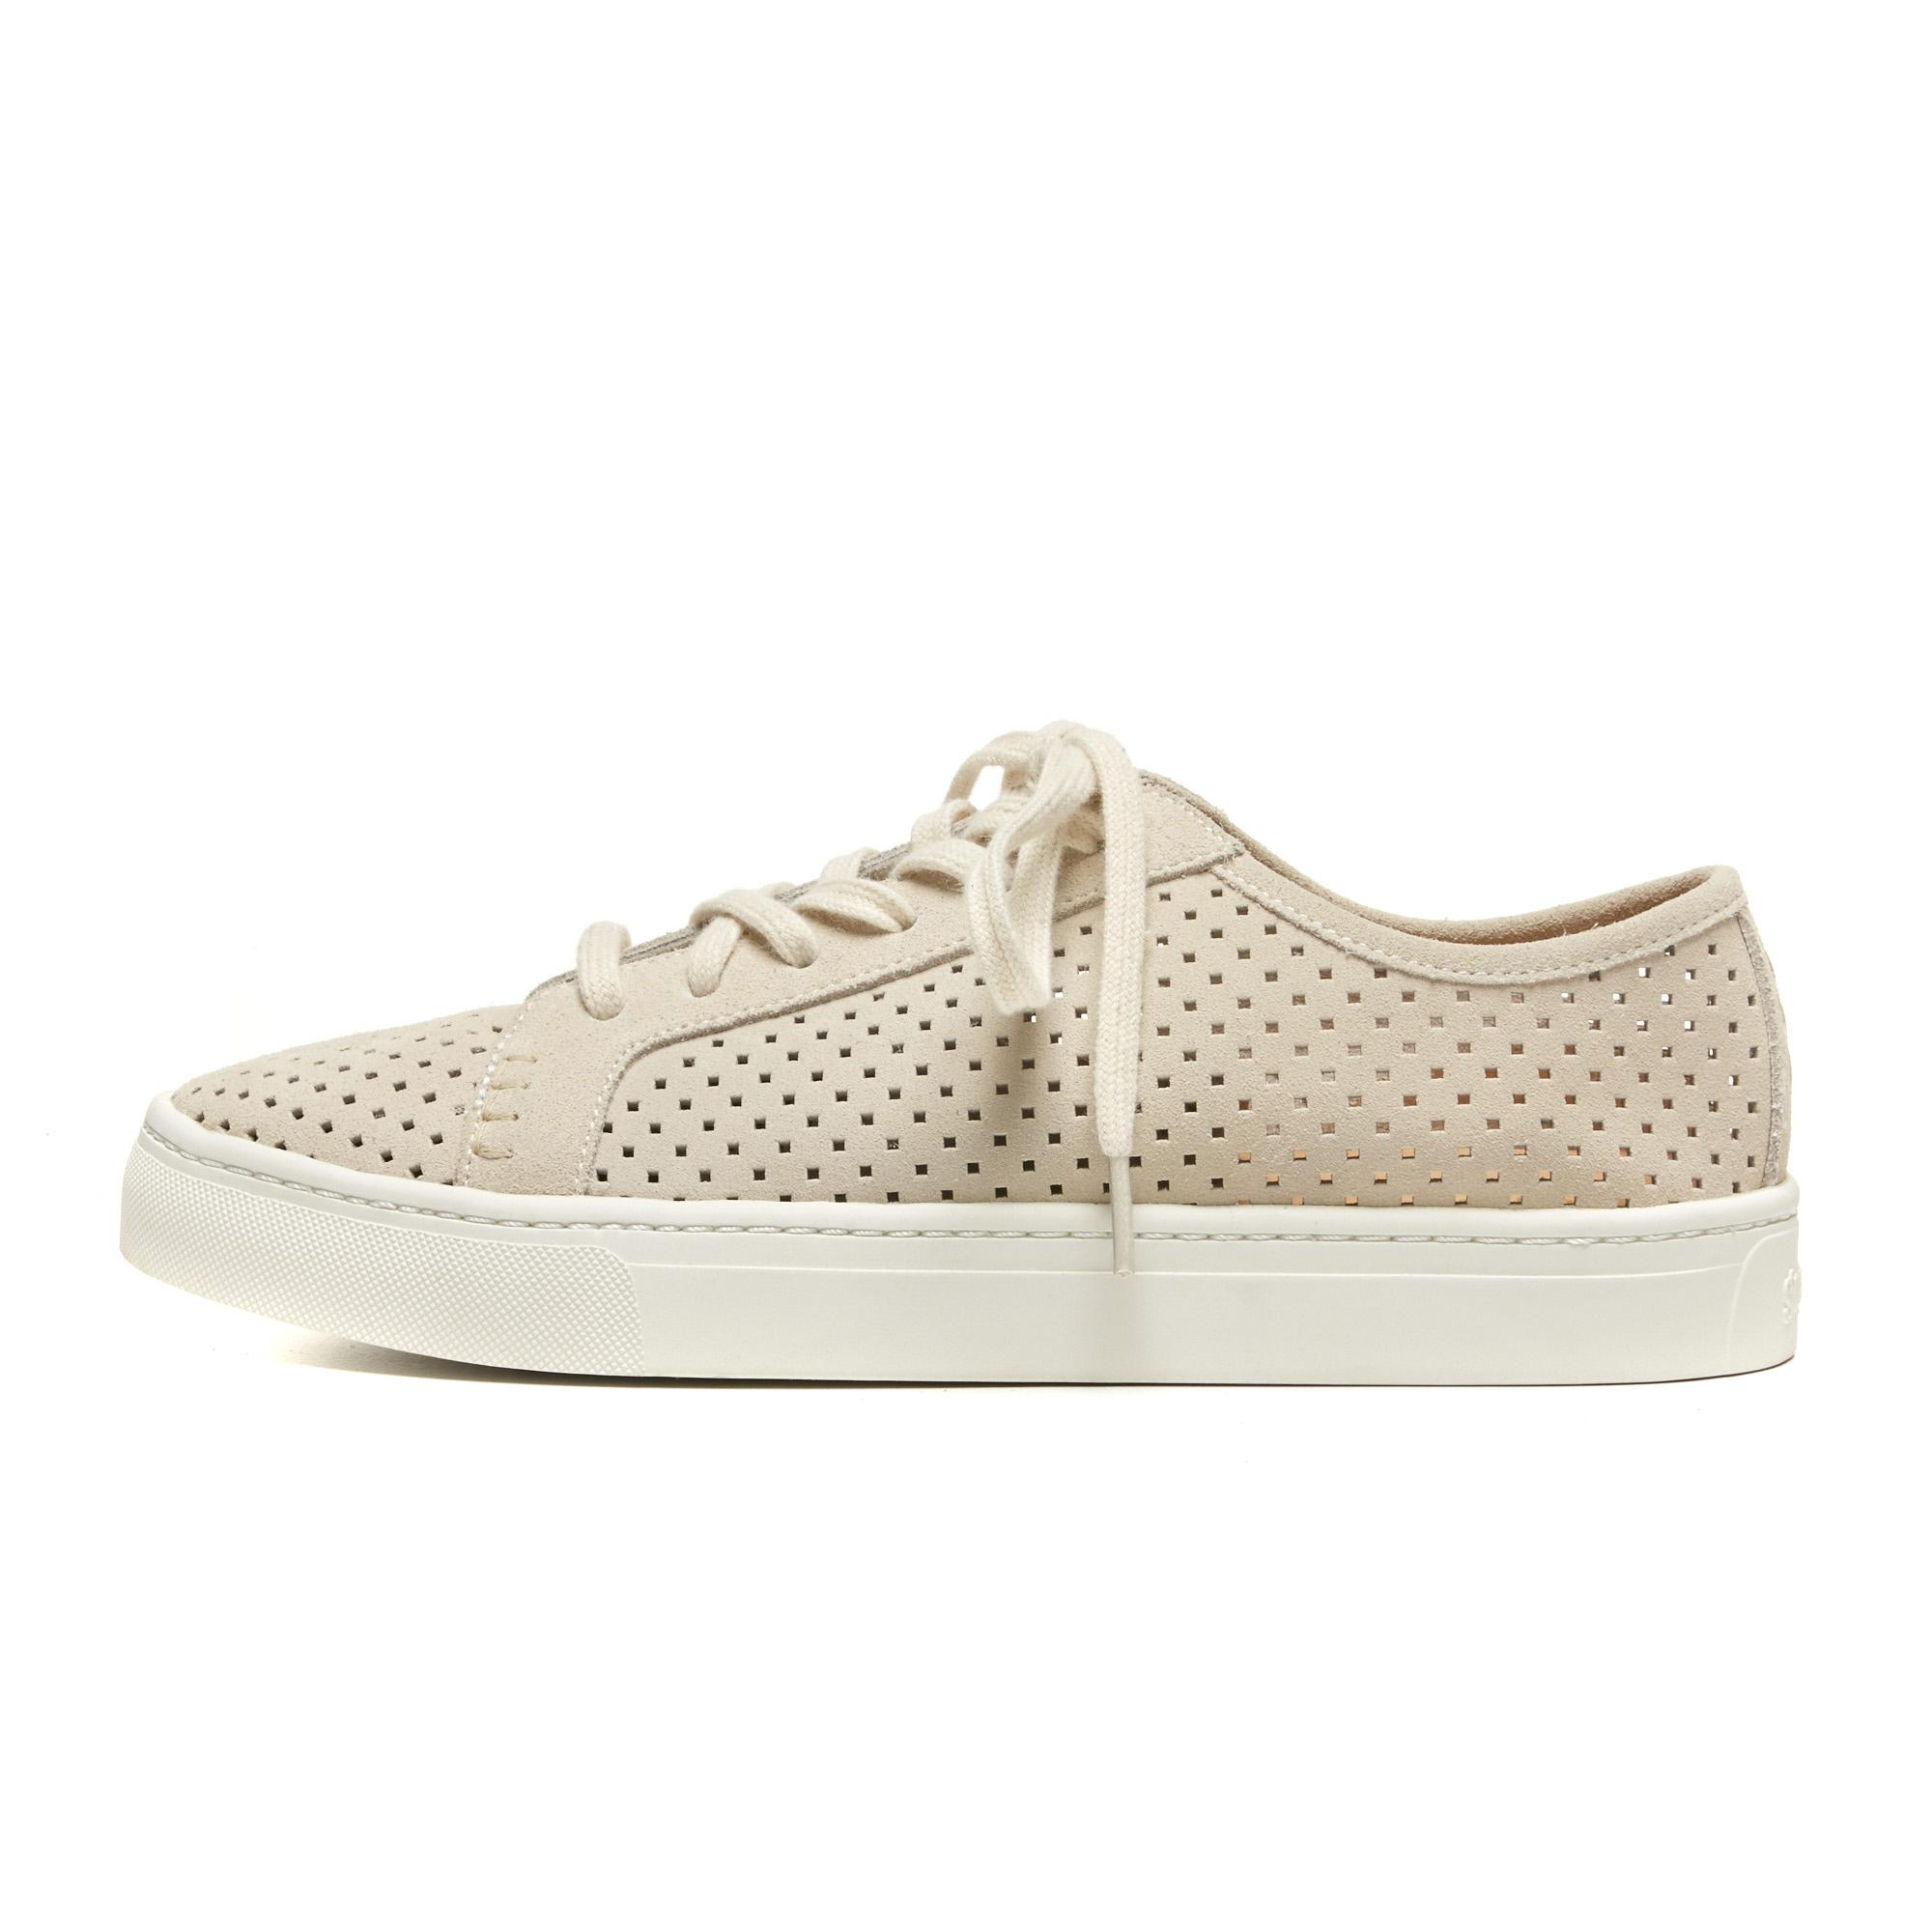 Soludos Perforated Suede Tennis Sneaker C6spn5E